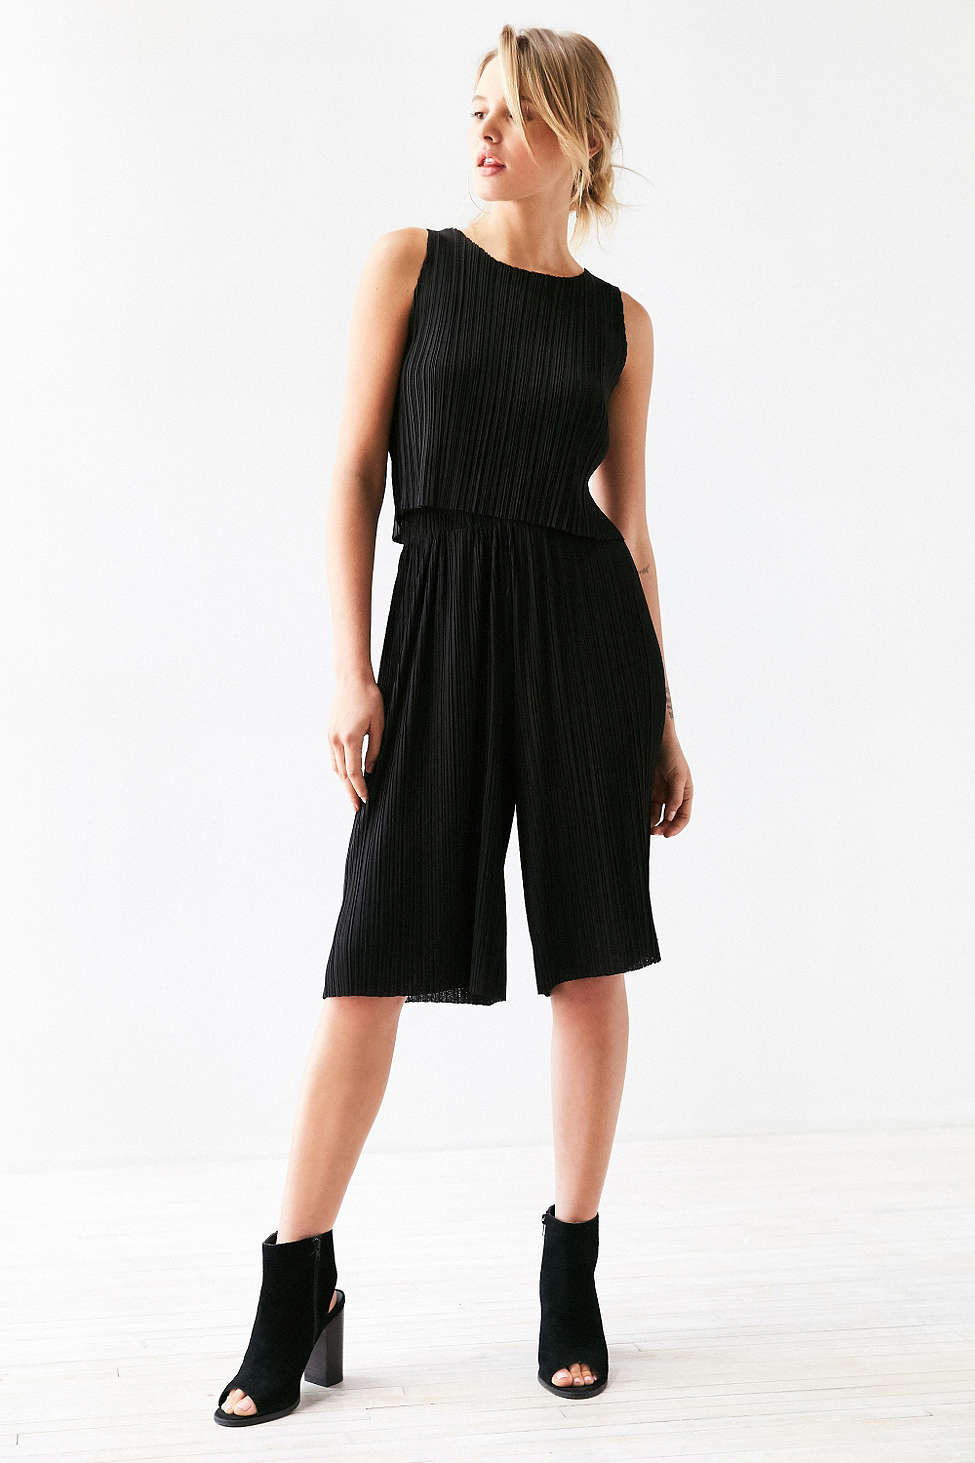 black-culottes-pants-black-top-black-shoe-sandalh-blonde-spring-summer-style-fashion-wear-matching-lunch.jpg